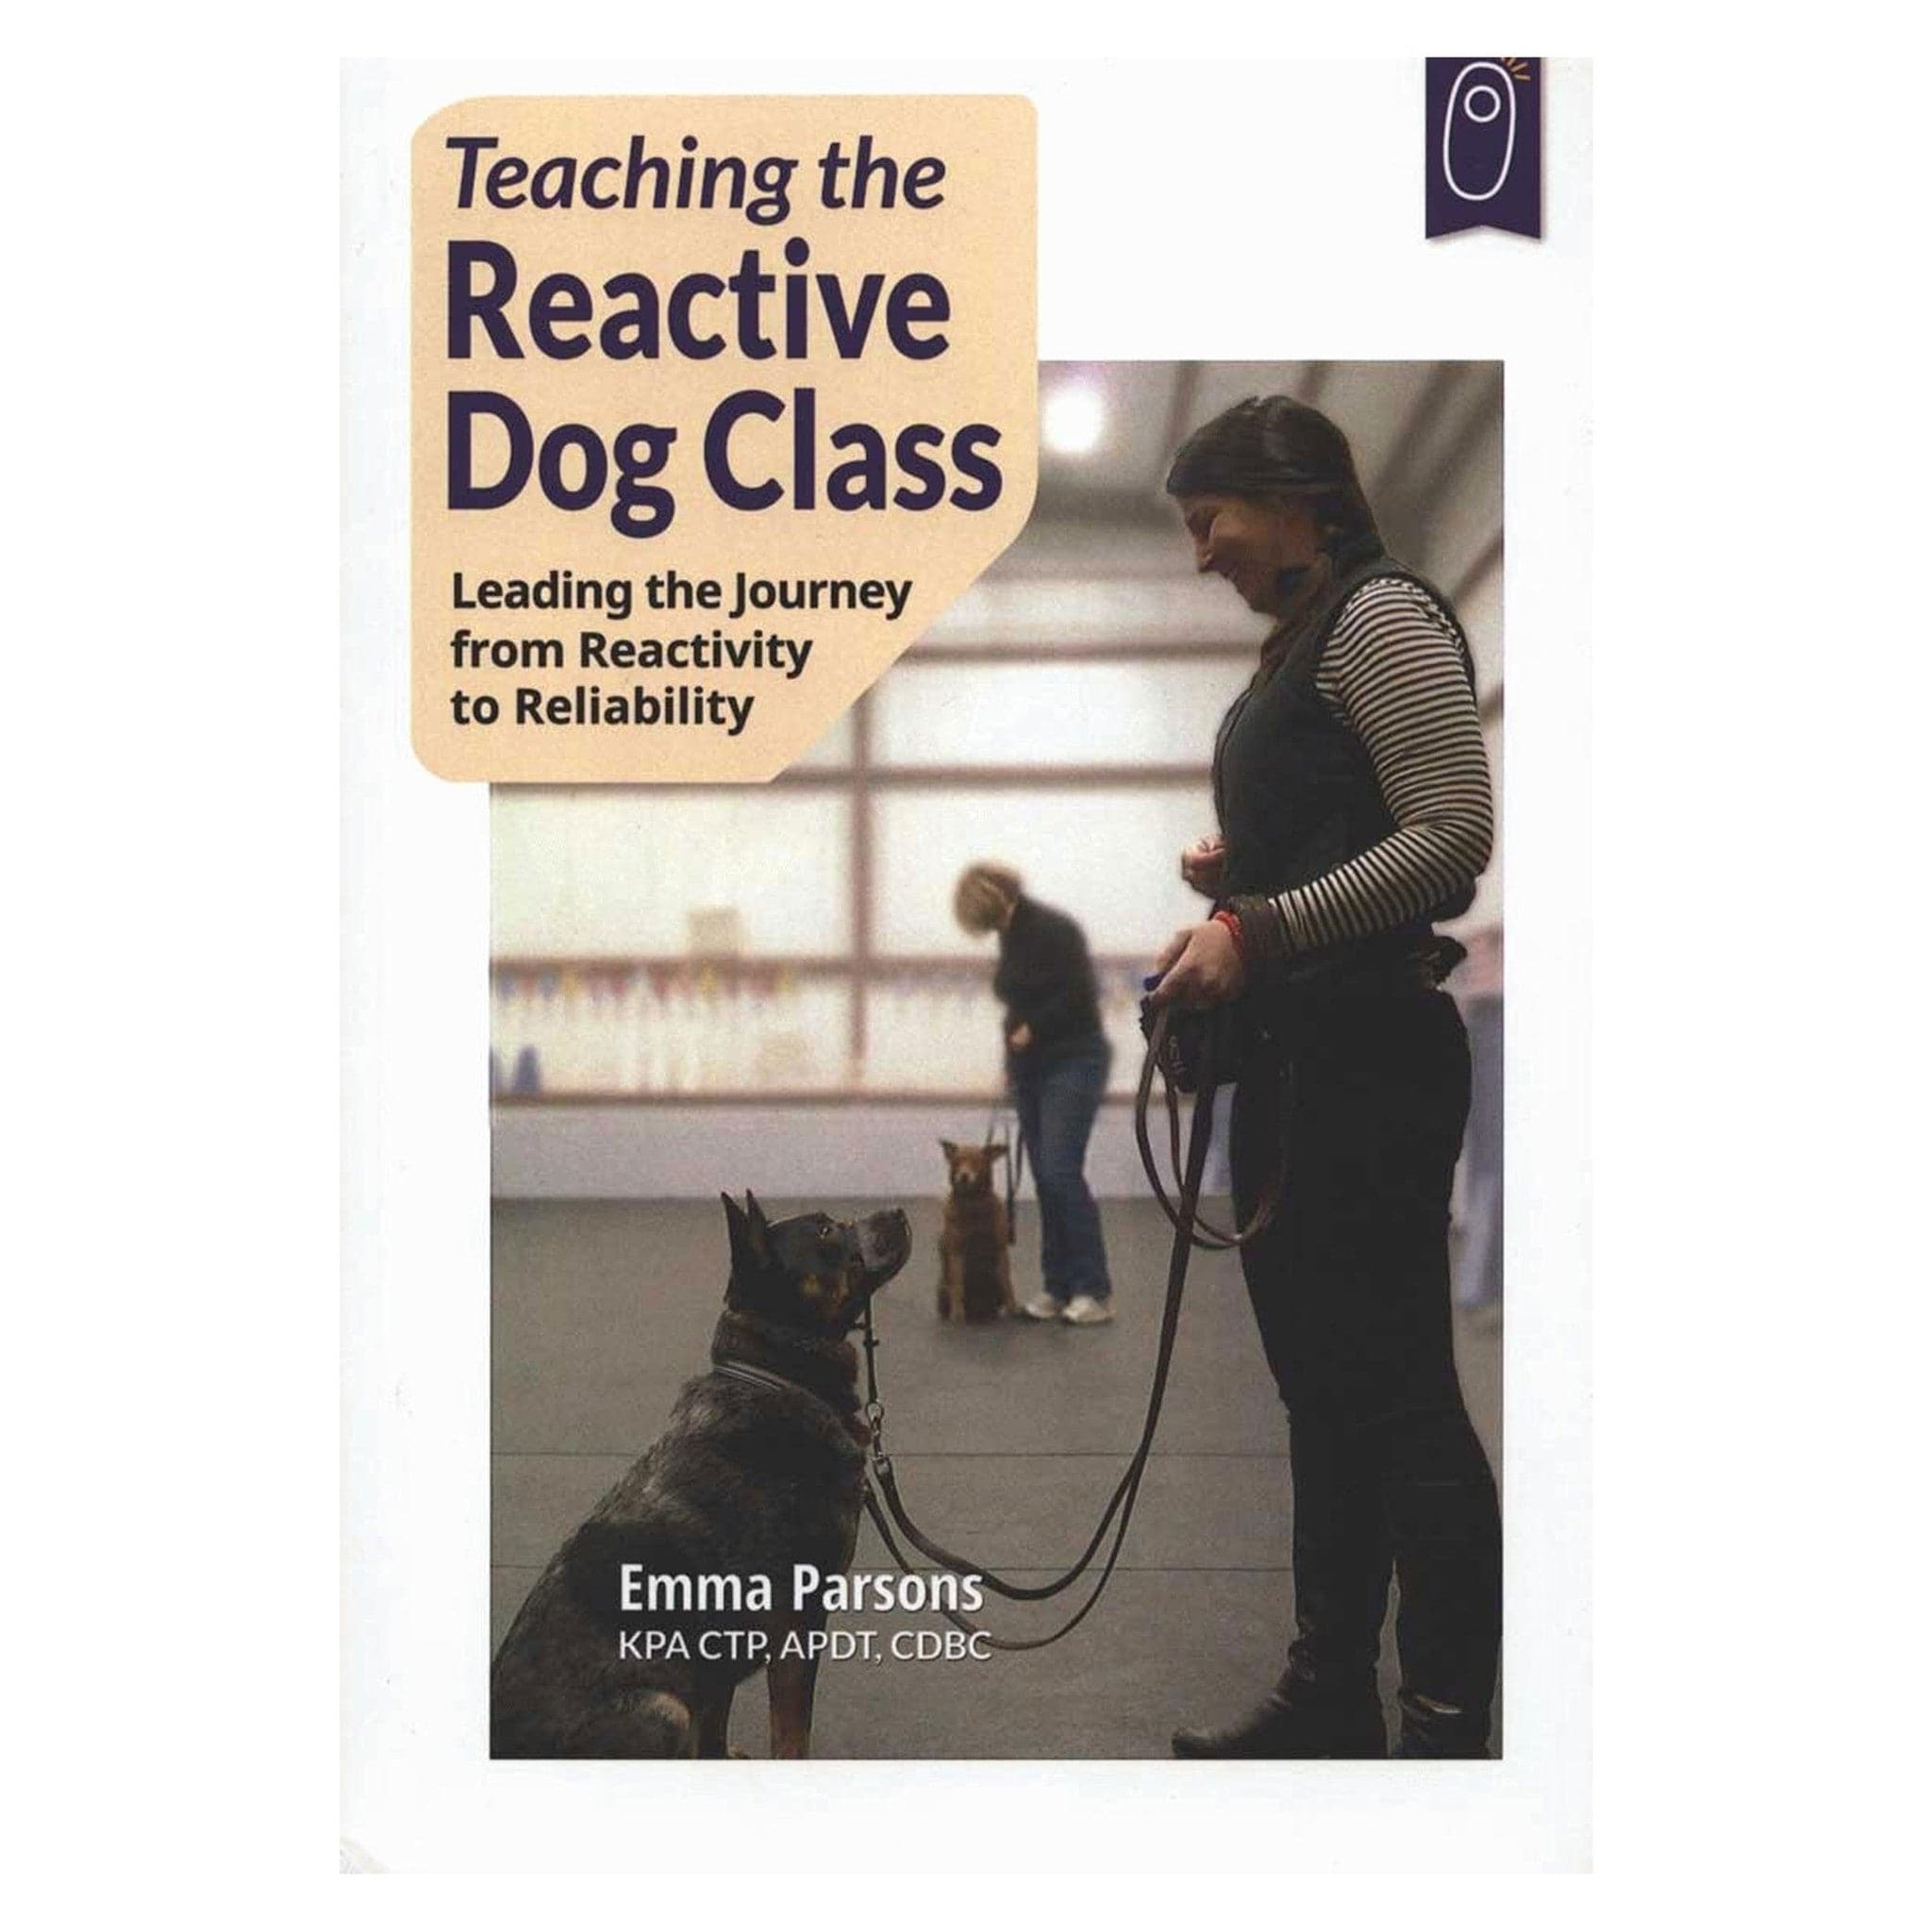 Teaching the Reactive Dog Class